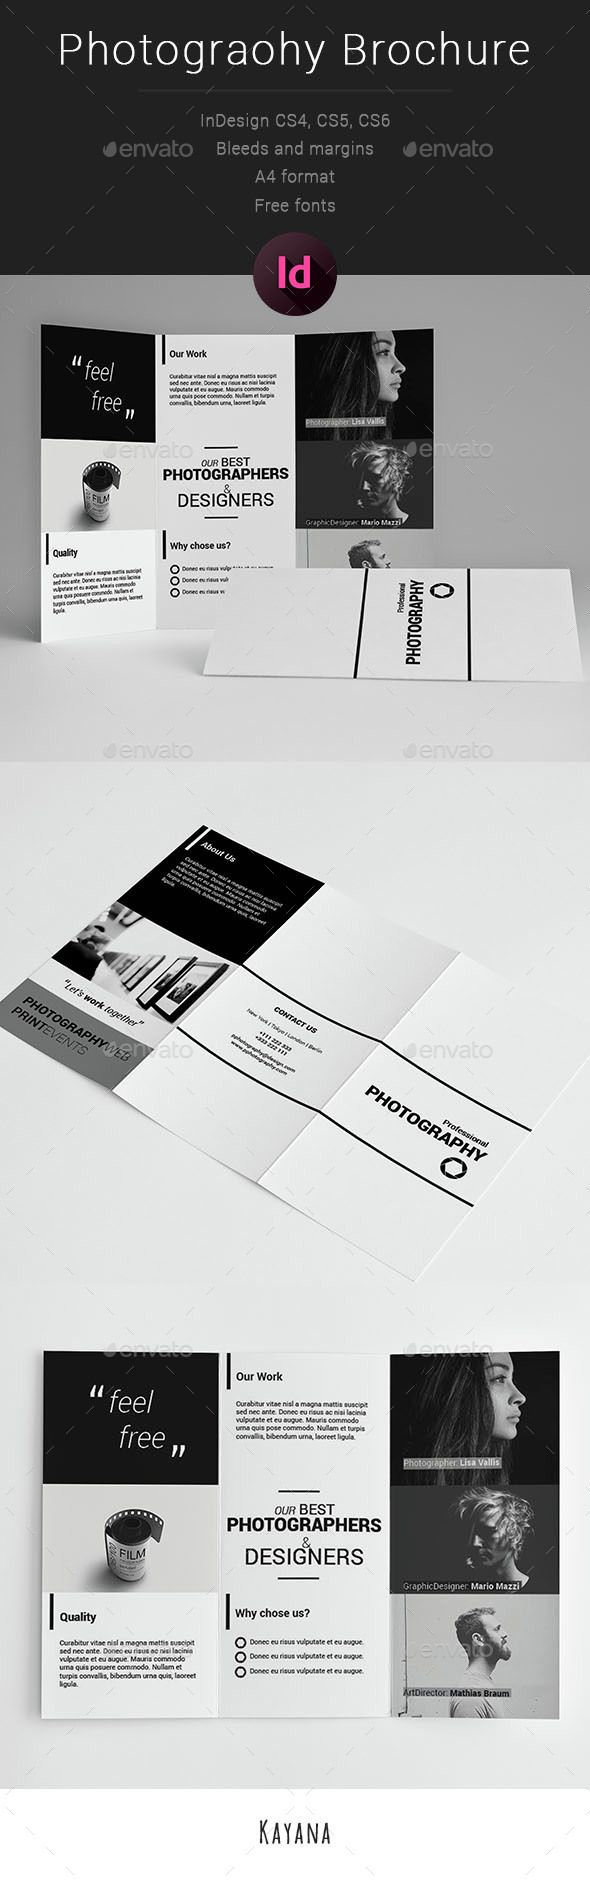 Professional Photography 3fold Brochure Template InDesign INDD #design Download: http://graphicriver.net/item/professional-photography-3fold/14552170?ref=ksioks